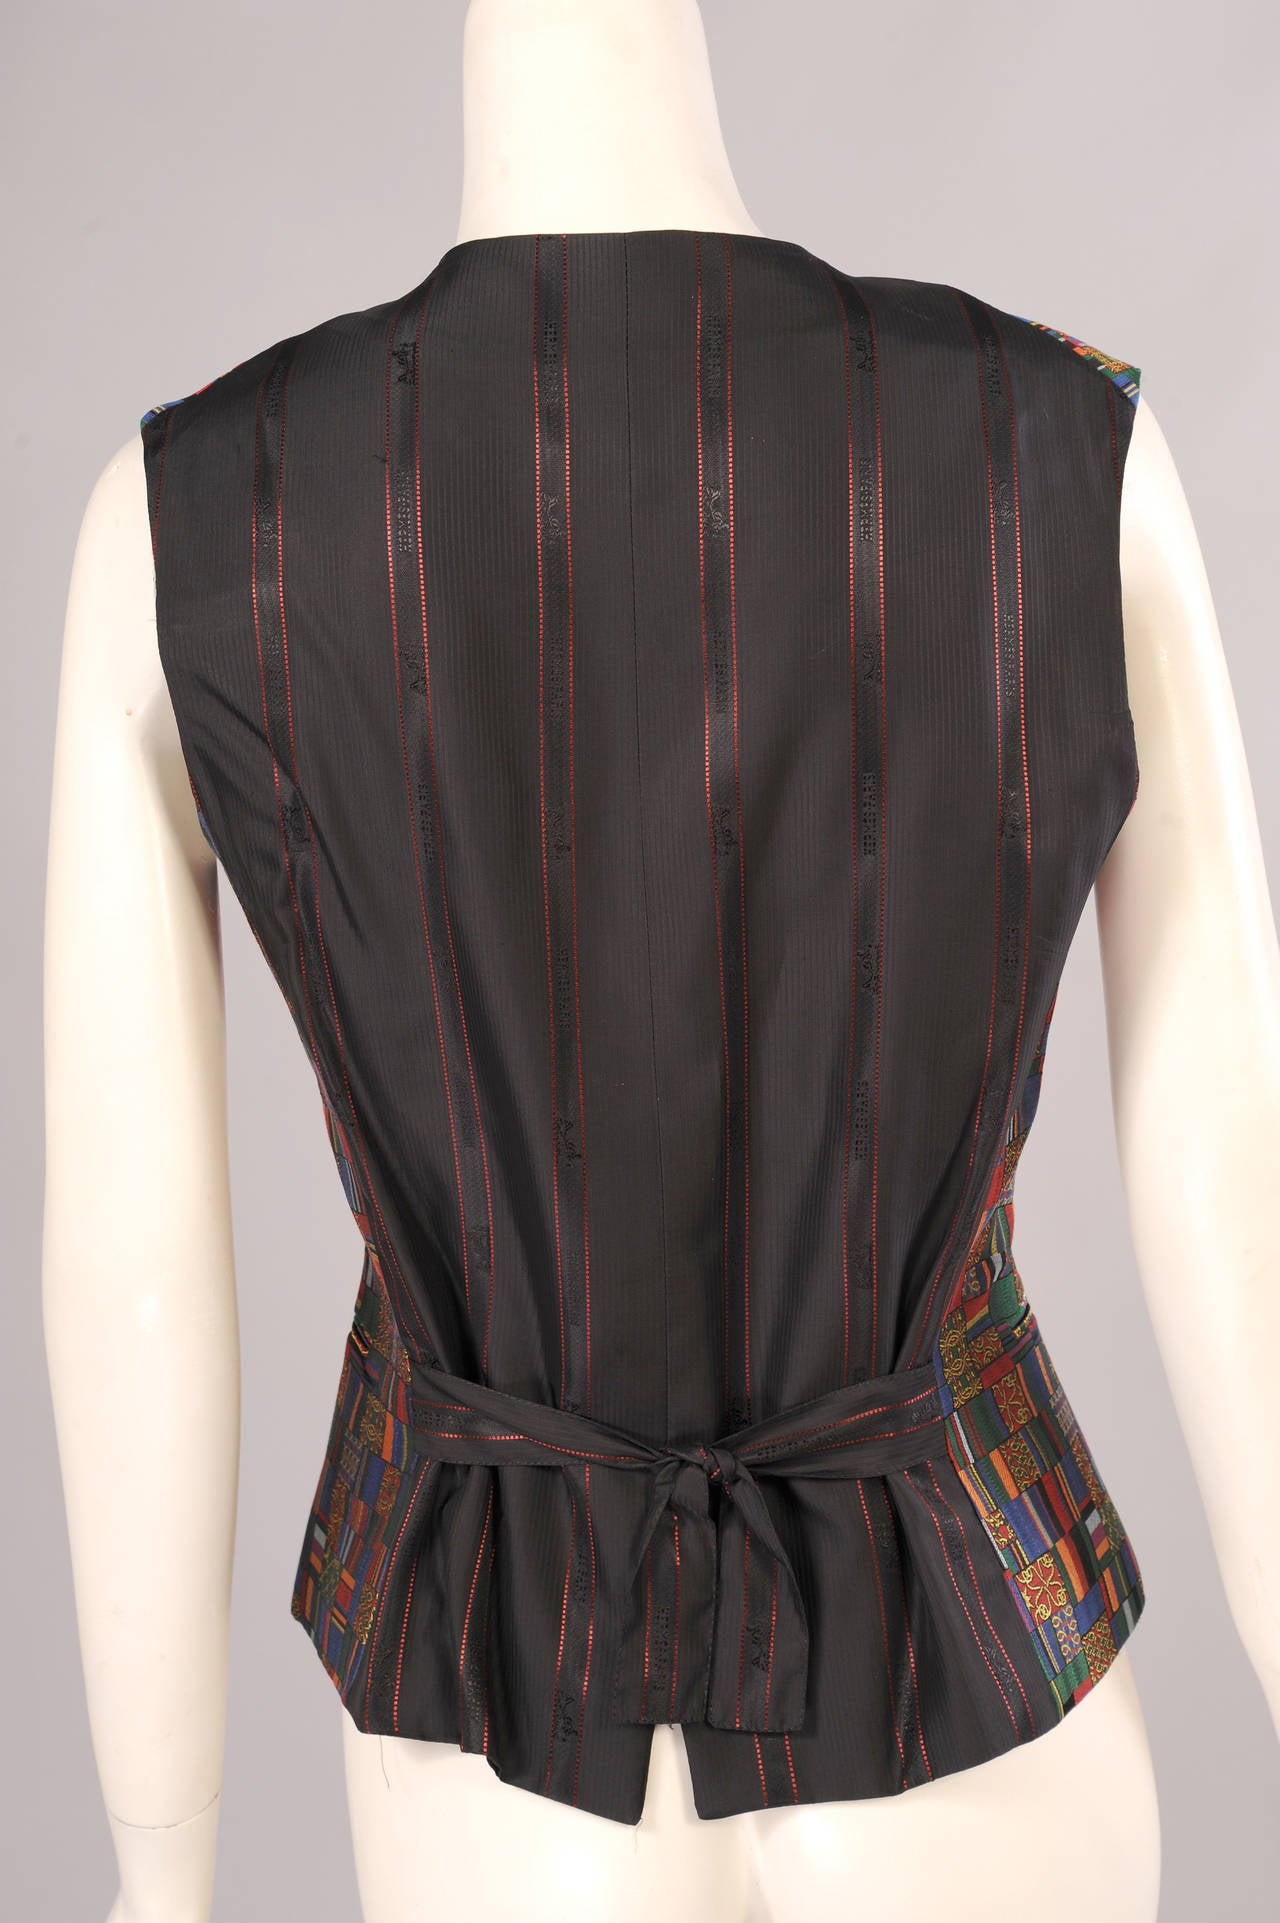 Hermes Paris Jewel Toned Woven Silk Vest In Excellent Condition For Sale In New Hope, PA